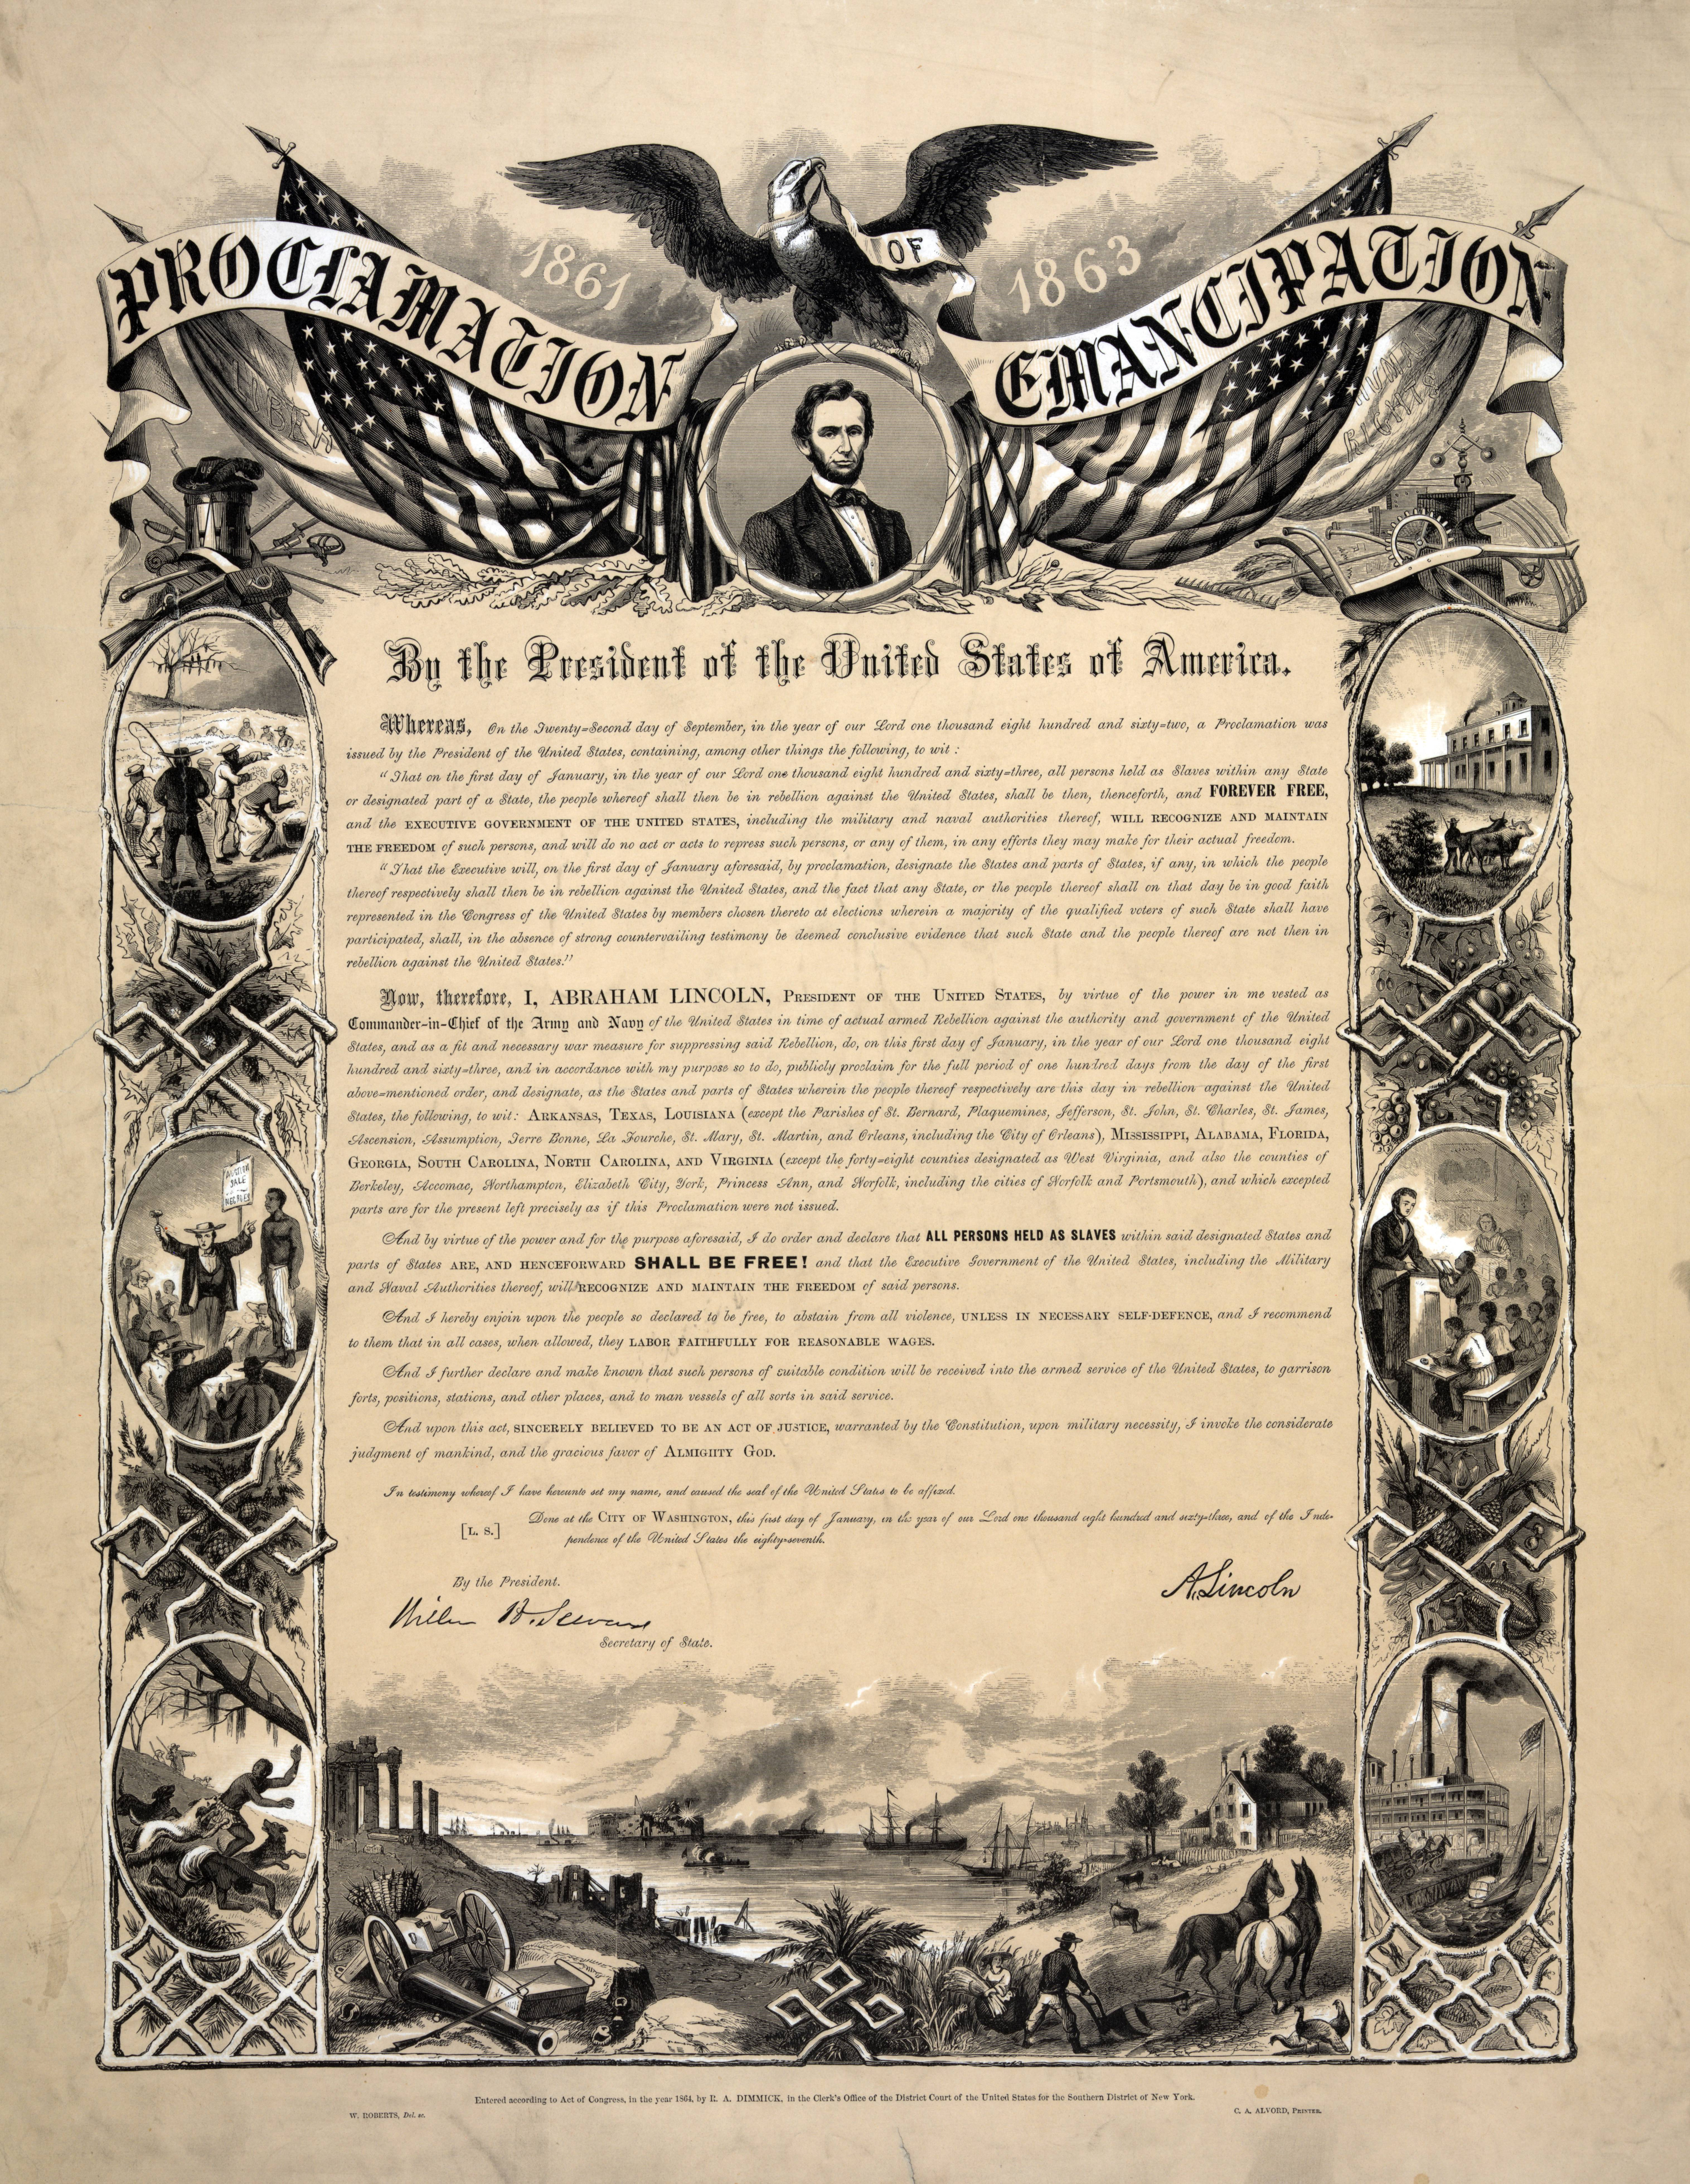 a history of the emancipation proclamation in united states Abraham lincoln, the 16th president of the united states, is remembered for the role he played in the emancipation of slaves lincoln issued the emancipation proclamation on september 22, 1862.